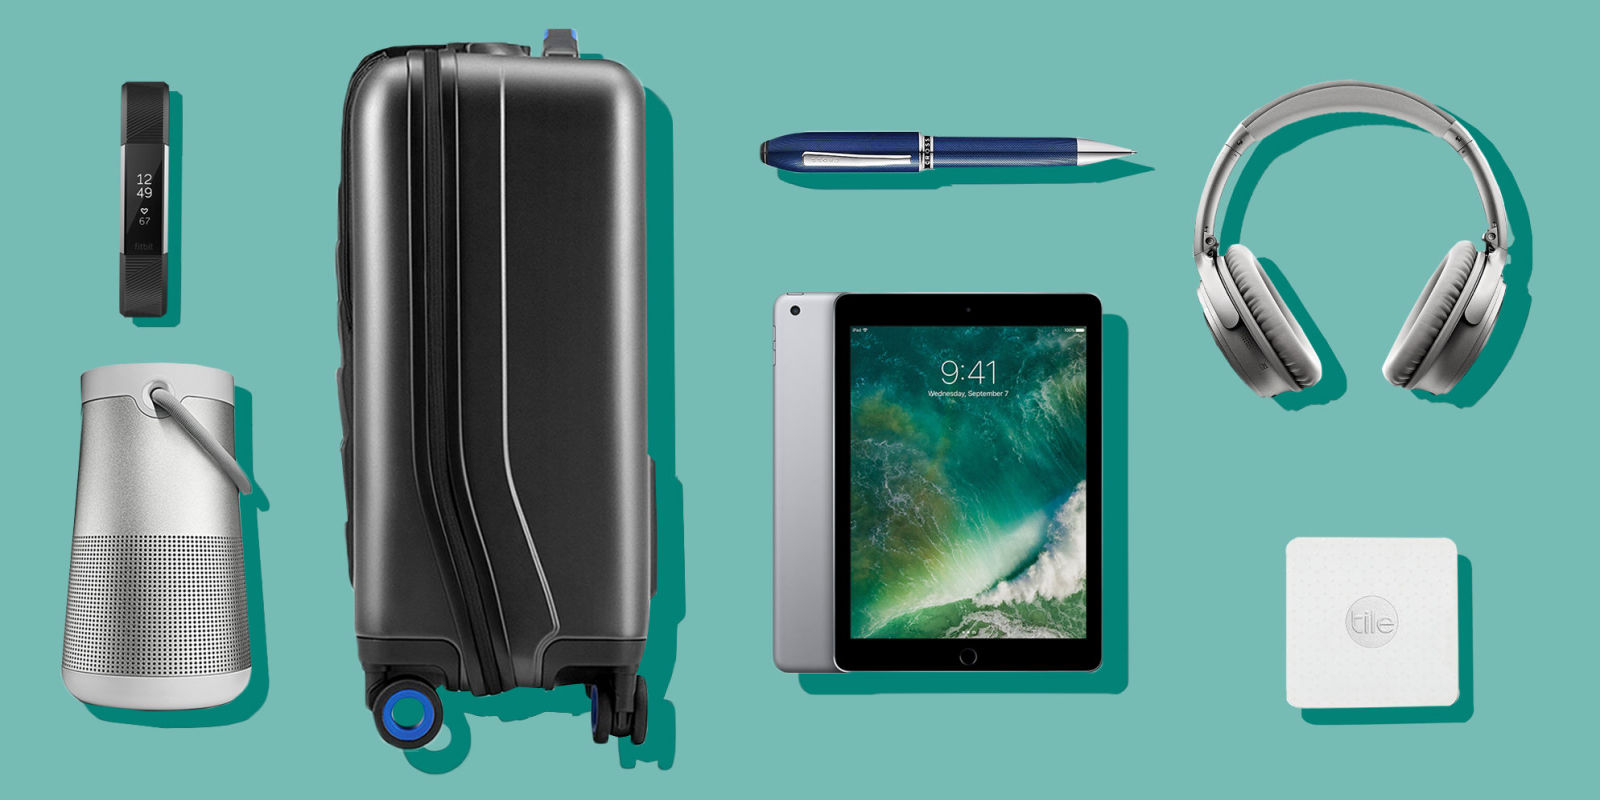 Tech Savvy Gifts 31 best tech gifts for 2017 - top tech gift ideas for gadget lovers